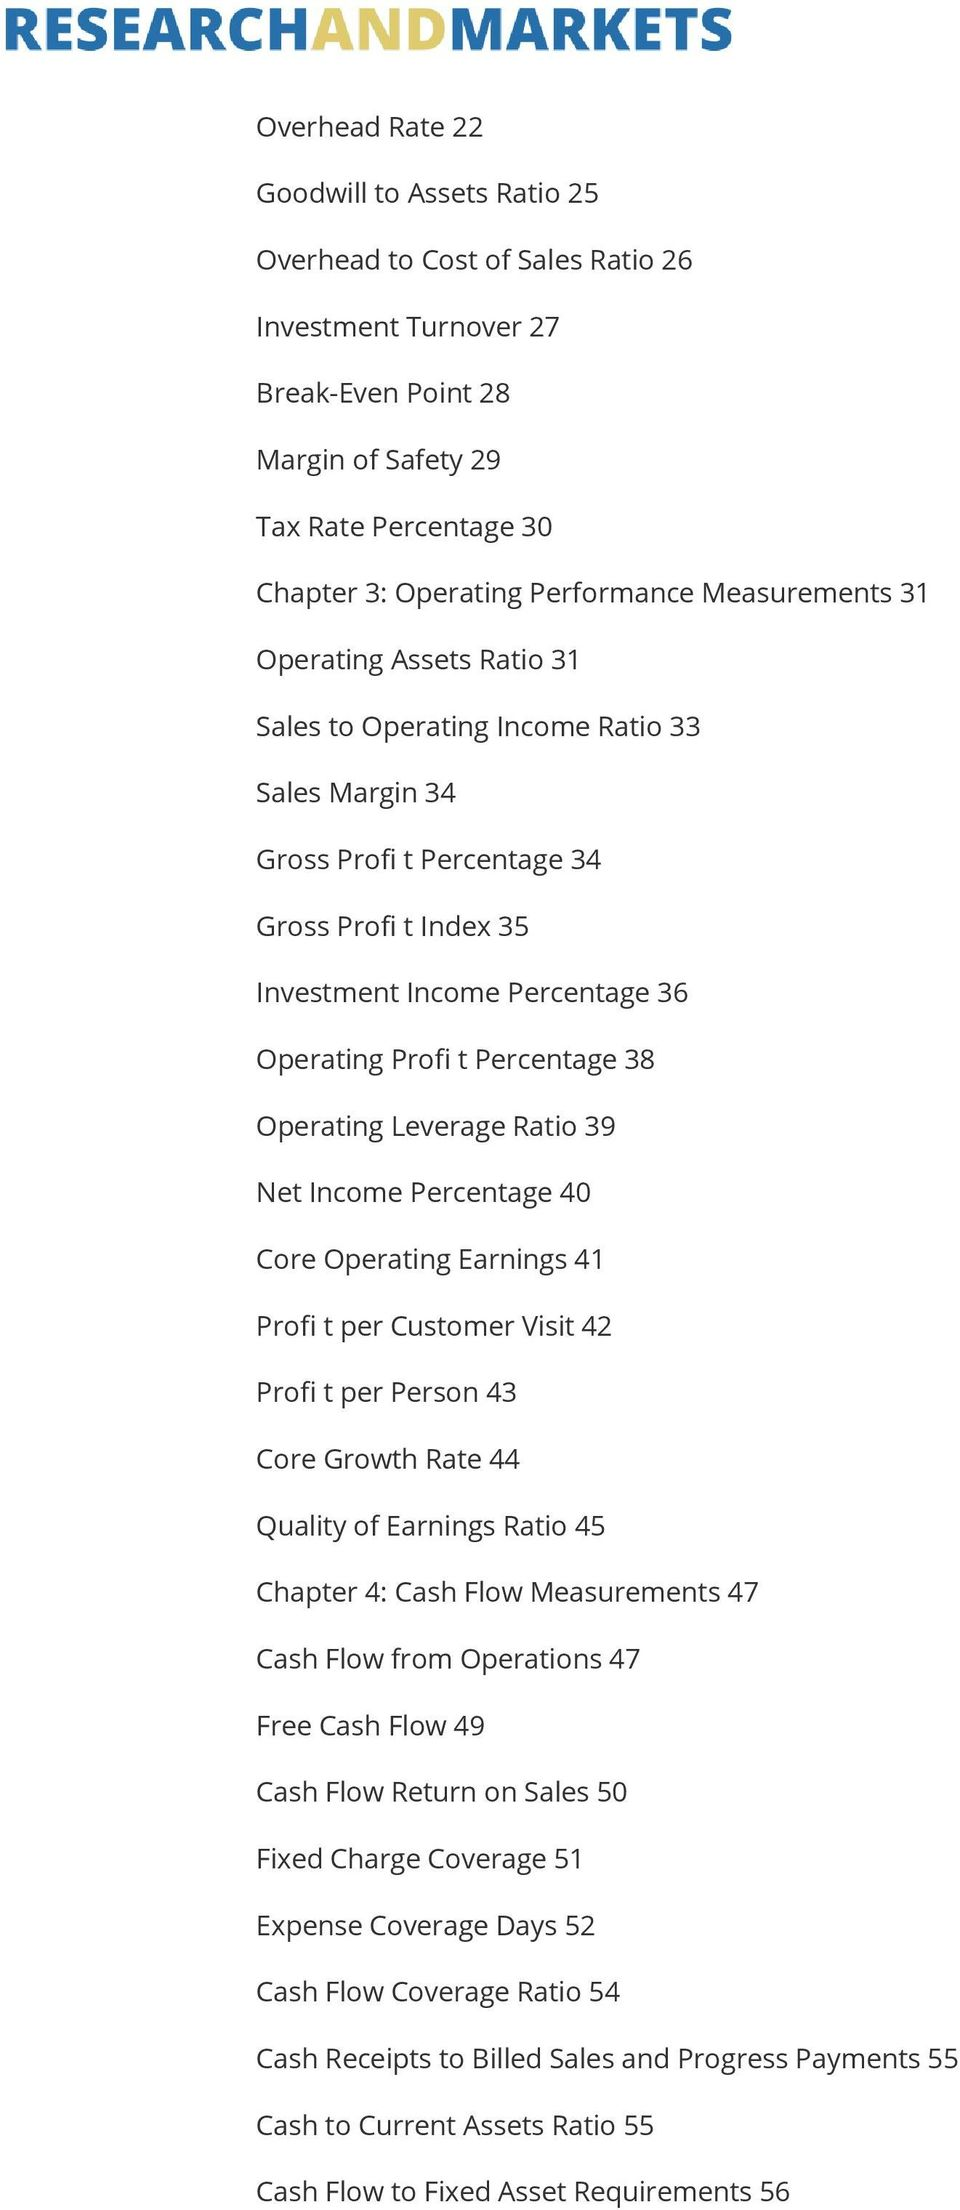 Percentage 38 Operating Leverage Ratio 39 Net Income Percentage 40 Core Operating Earnings 41 Profi t per Customer Visit 42 Profi t per Person 43 Core Growth Rate 44 Quality of Earnings Ratio 45